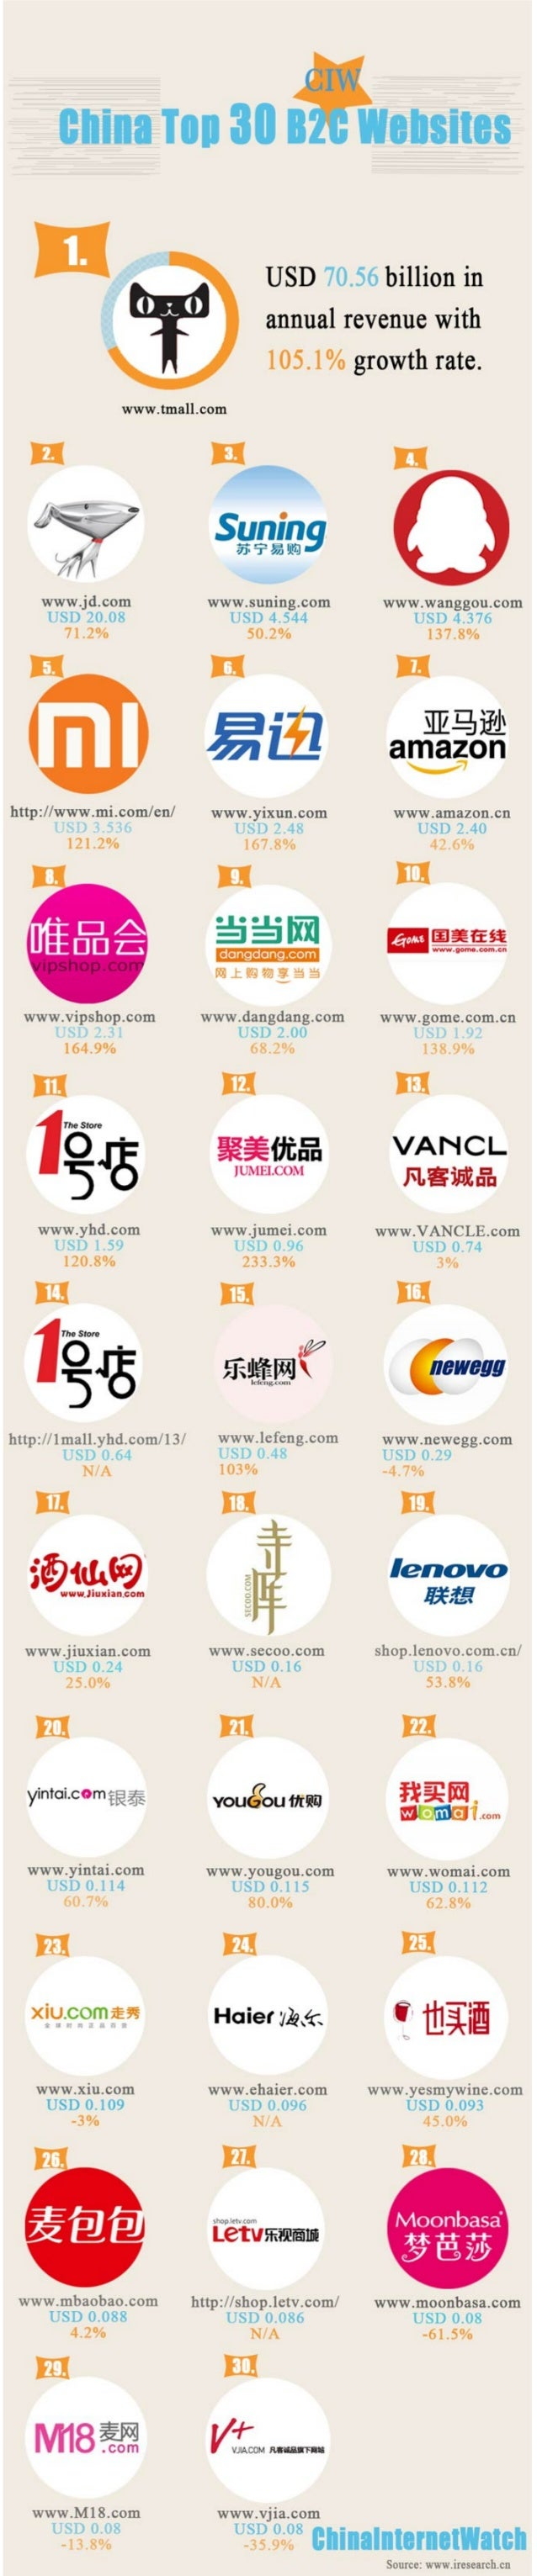 China Top 30 B2C Website [INFOGRAPHIC]